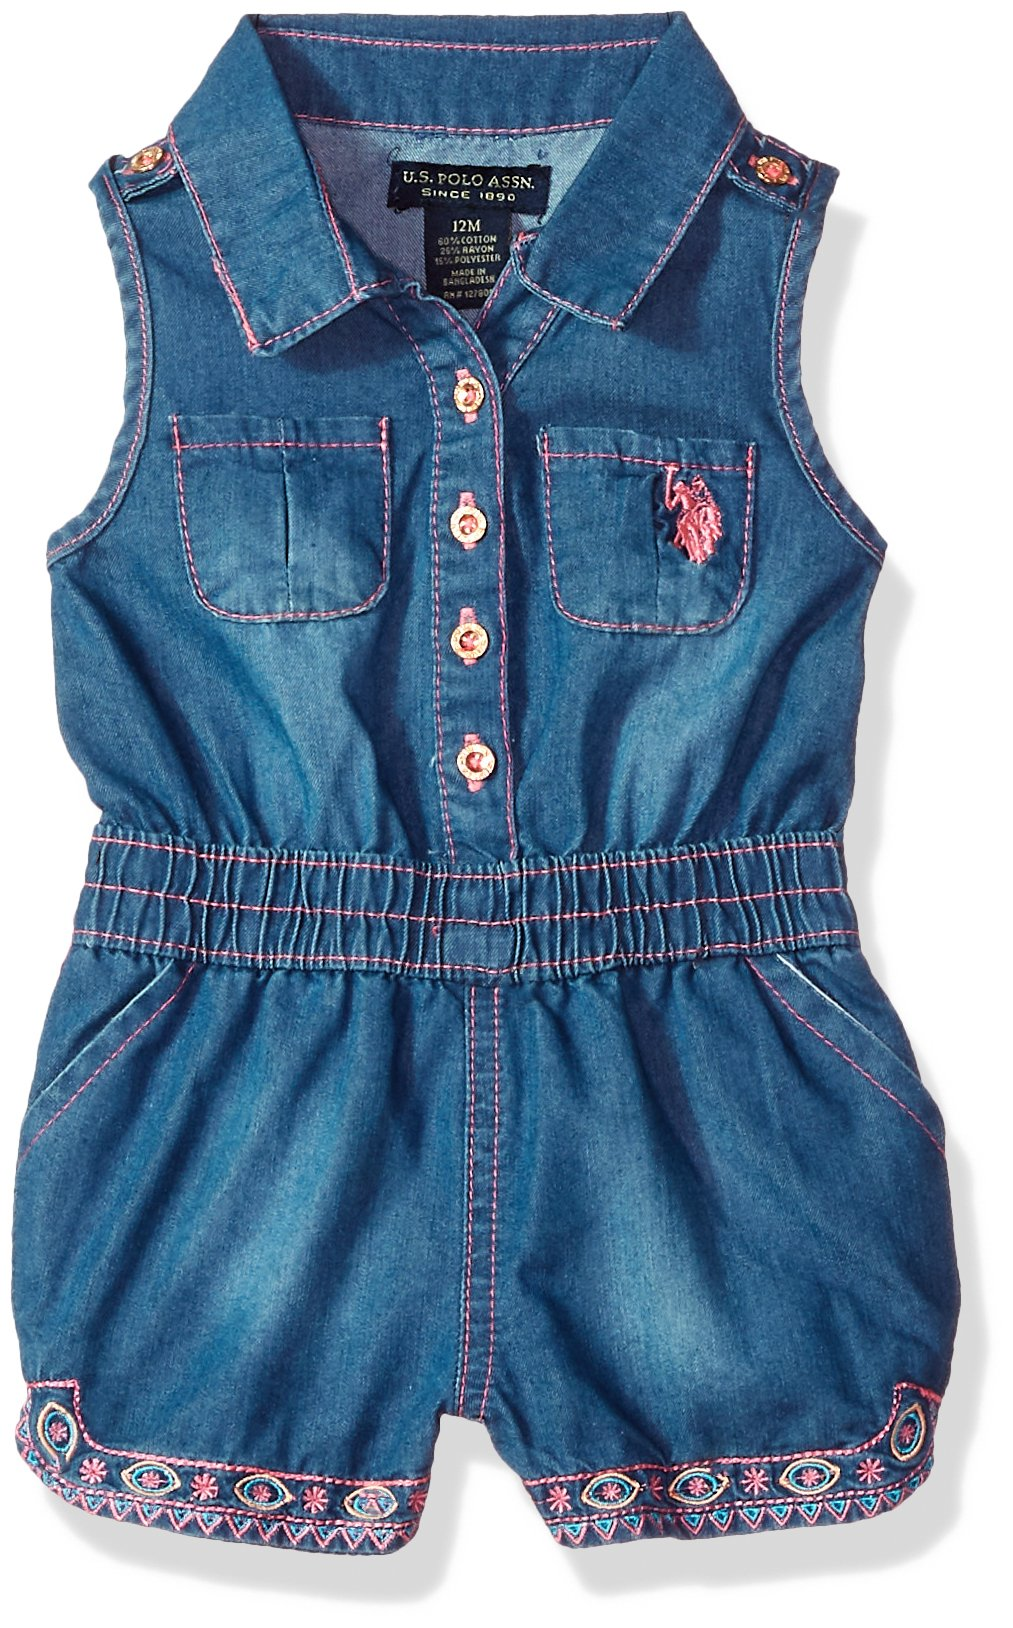 U.S. Polo Assn. Baby Girls Romper, Button Front